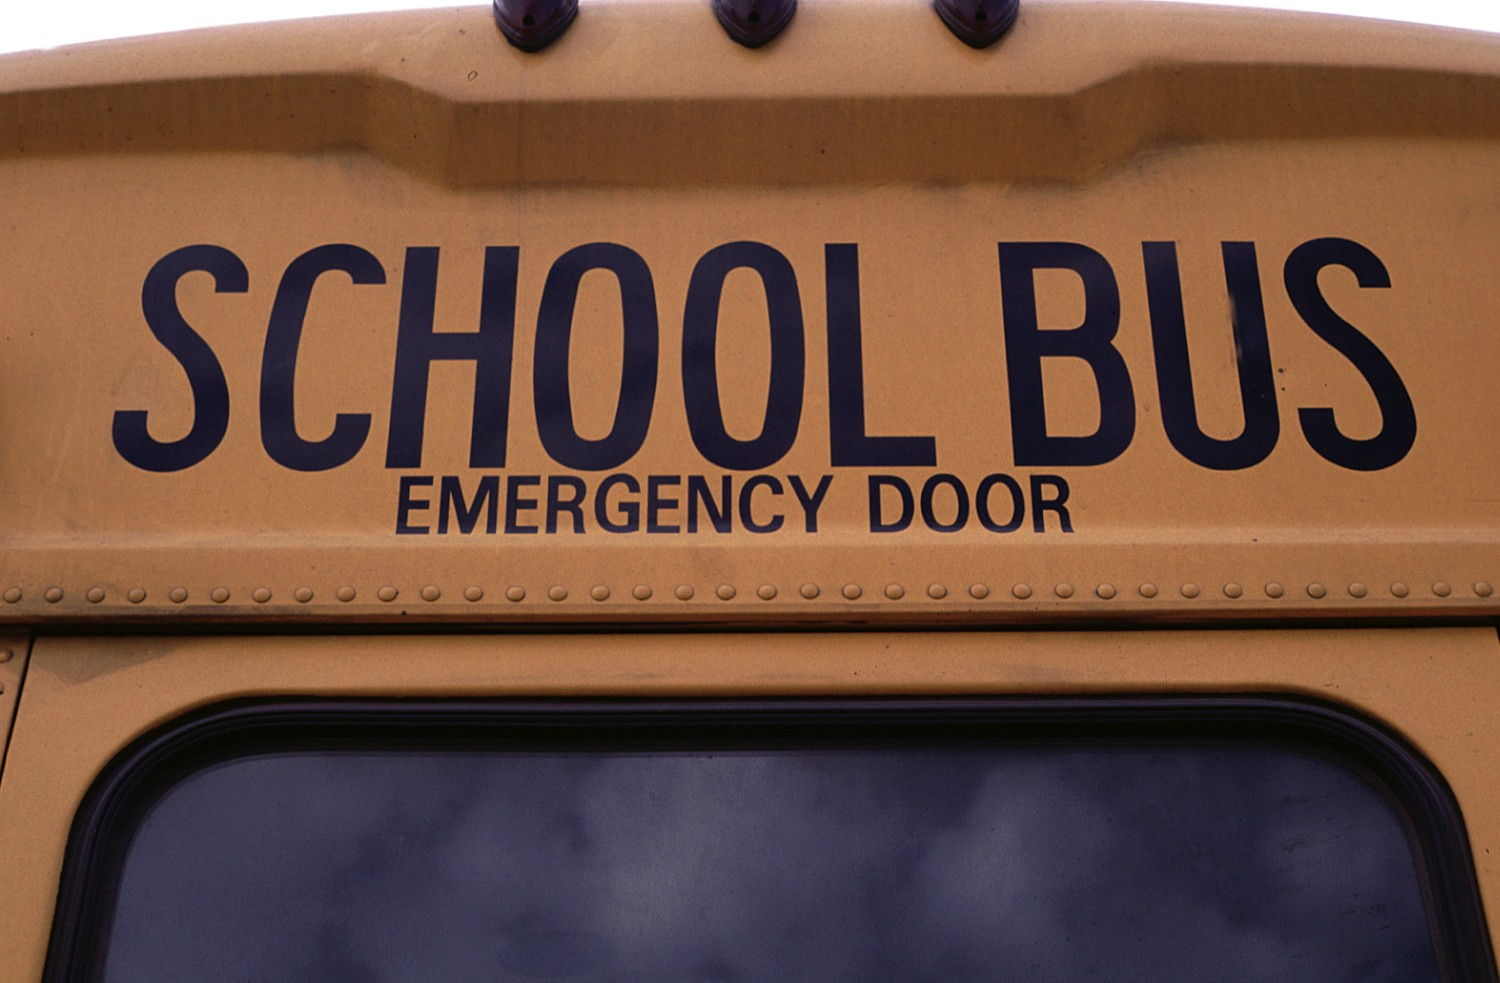 Black Man Replaces White Man on Amherst School Board